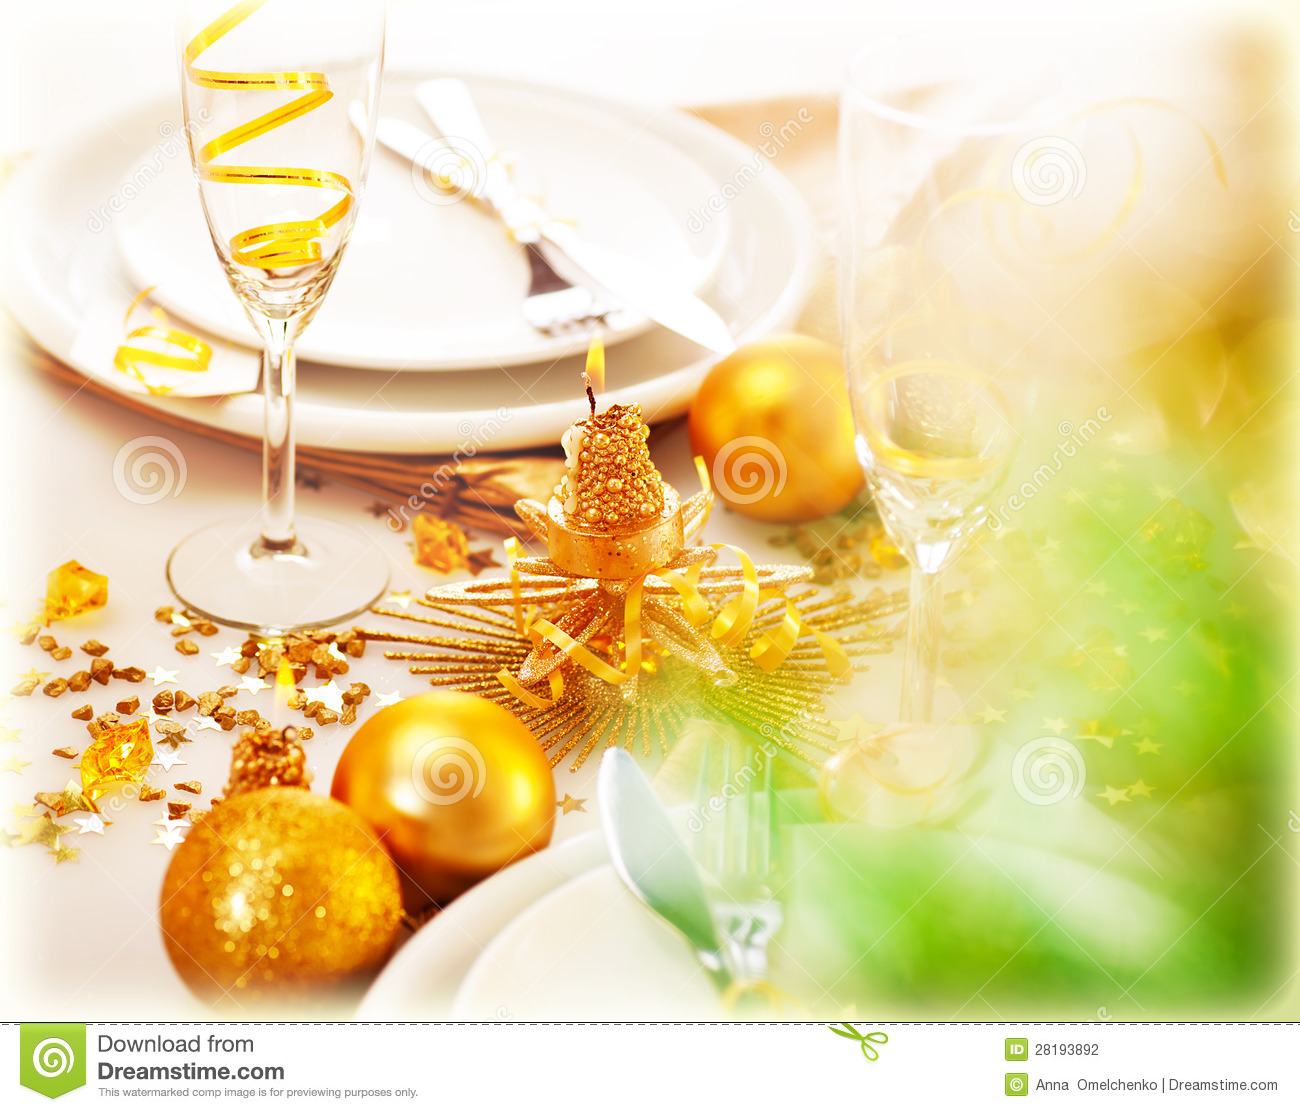 New year table decorations stock photo image of champagne - Decoration table reveillon jour de l an ...